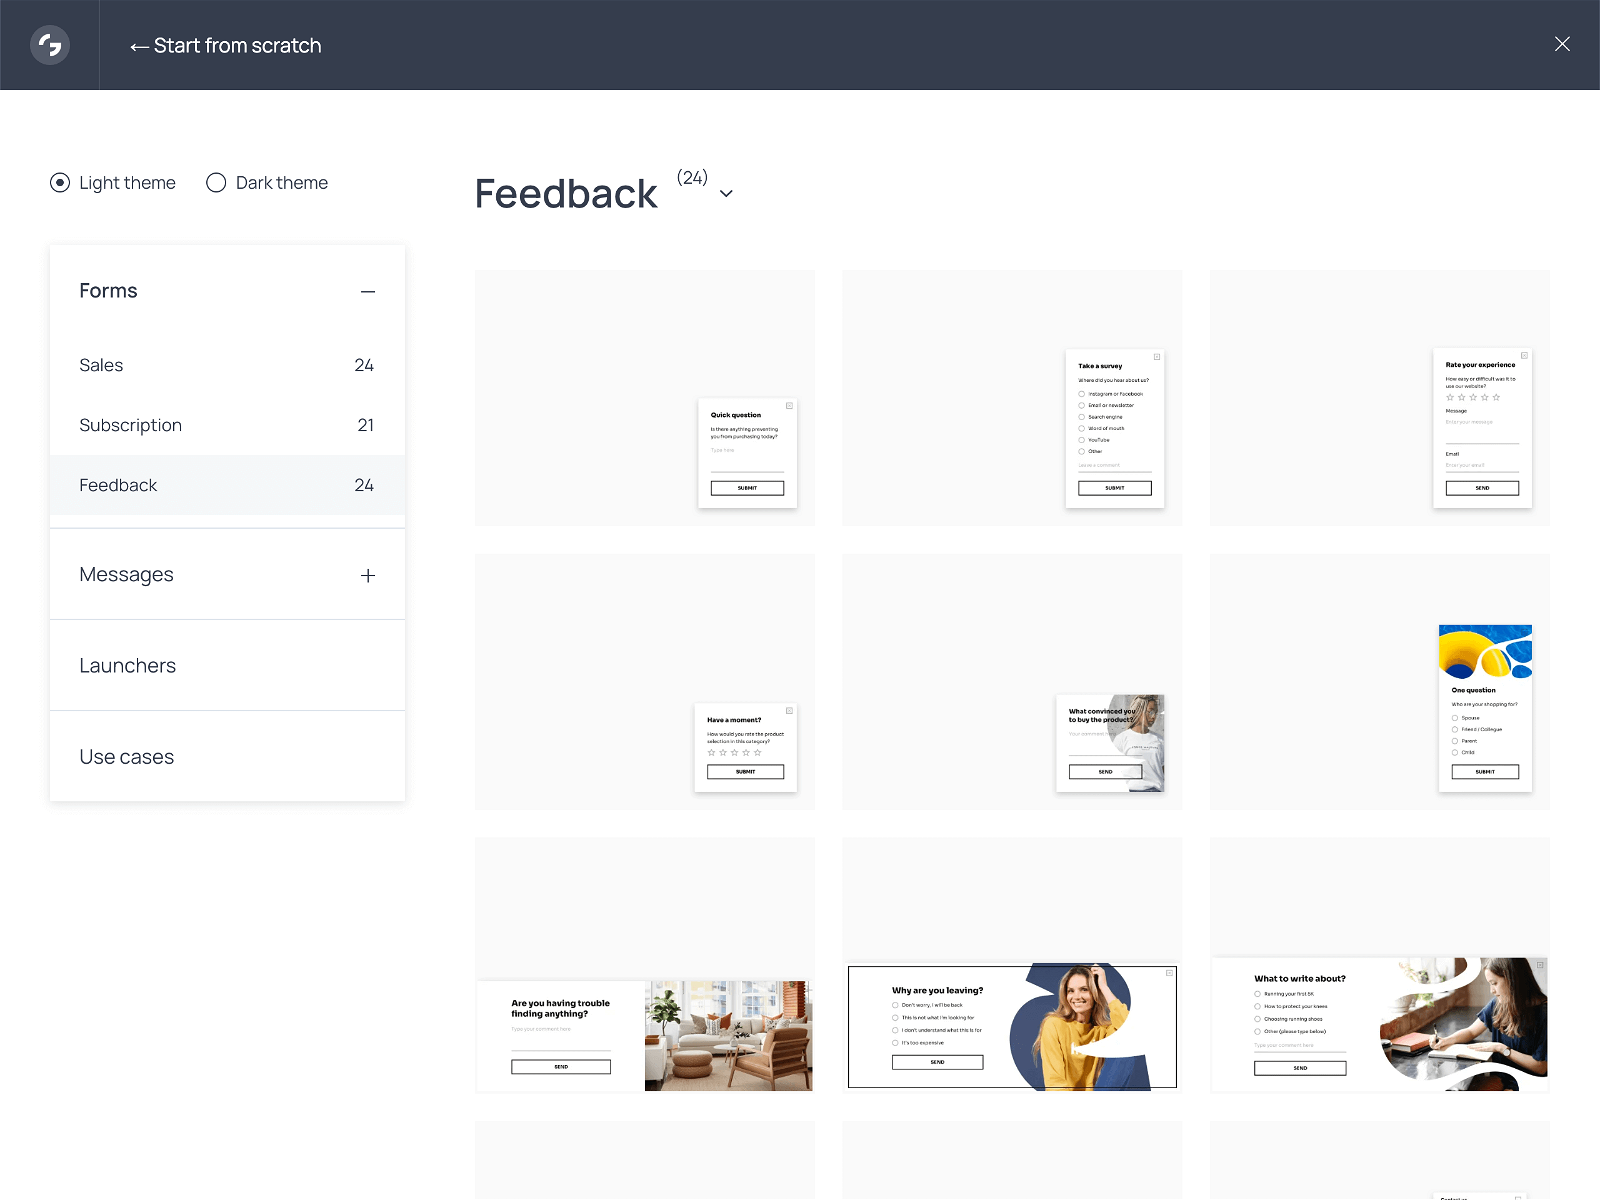 Large gallery of website survey popups available from the Getsitecontrol dashboard